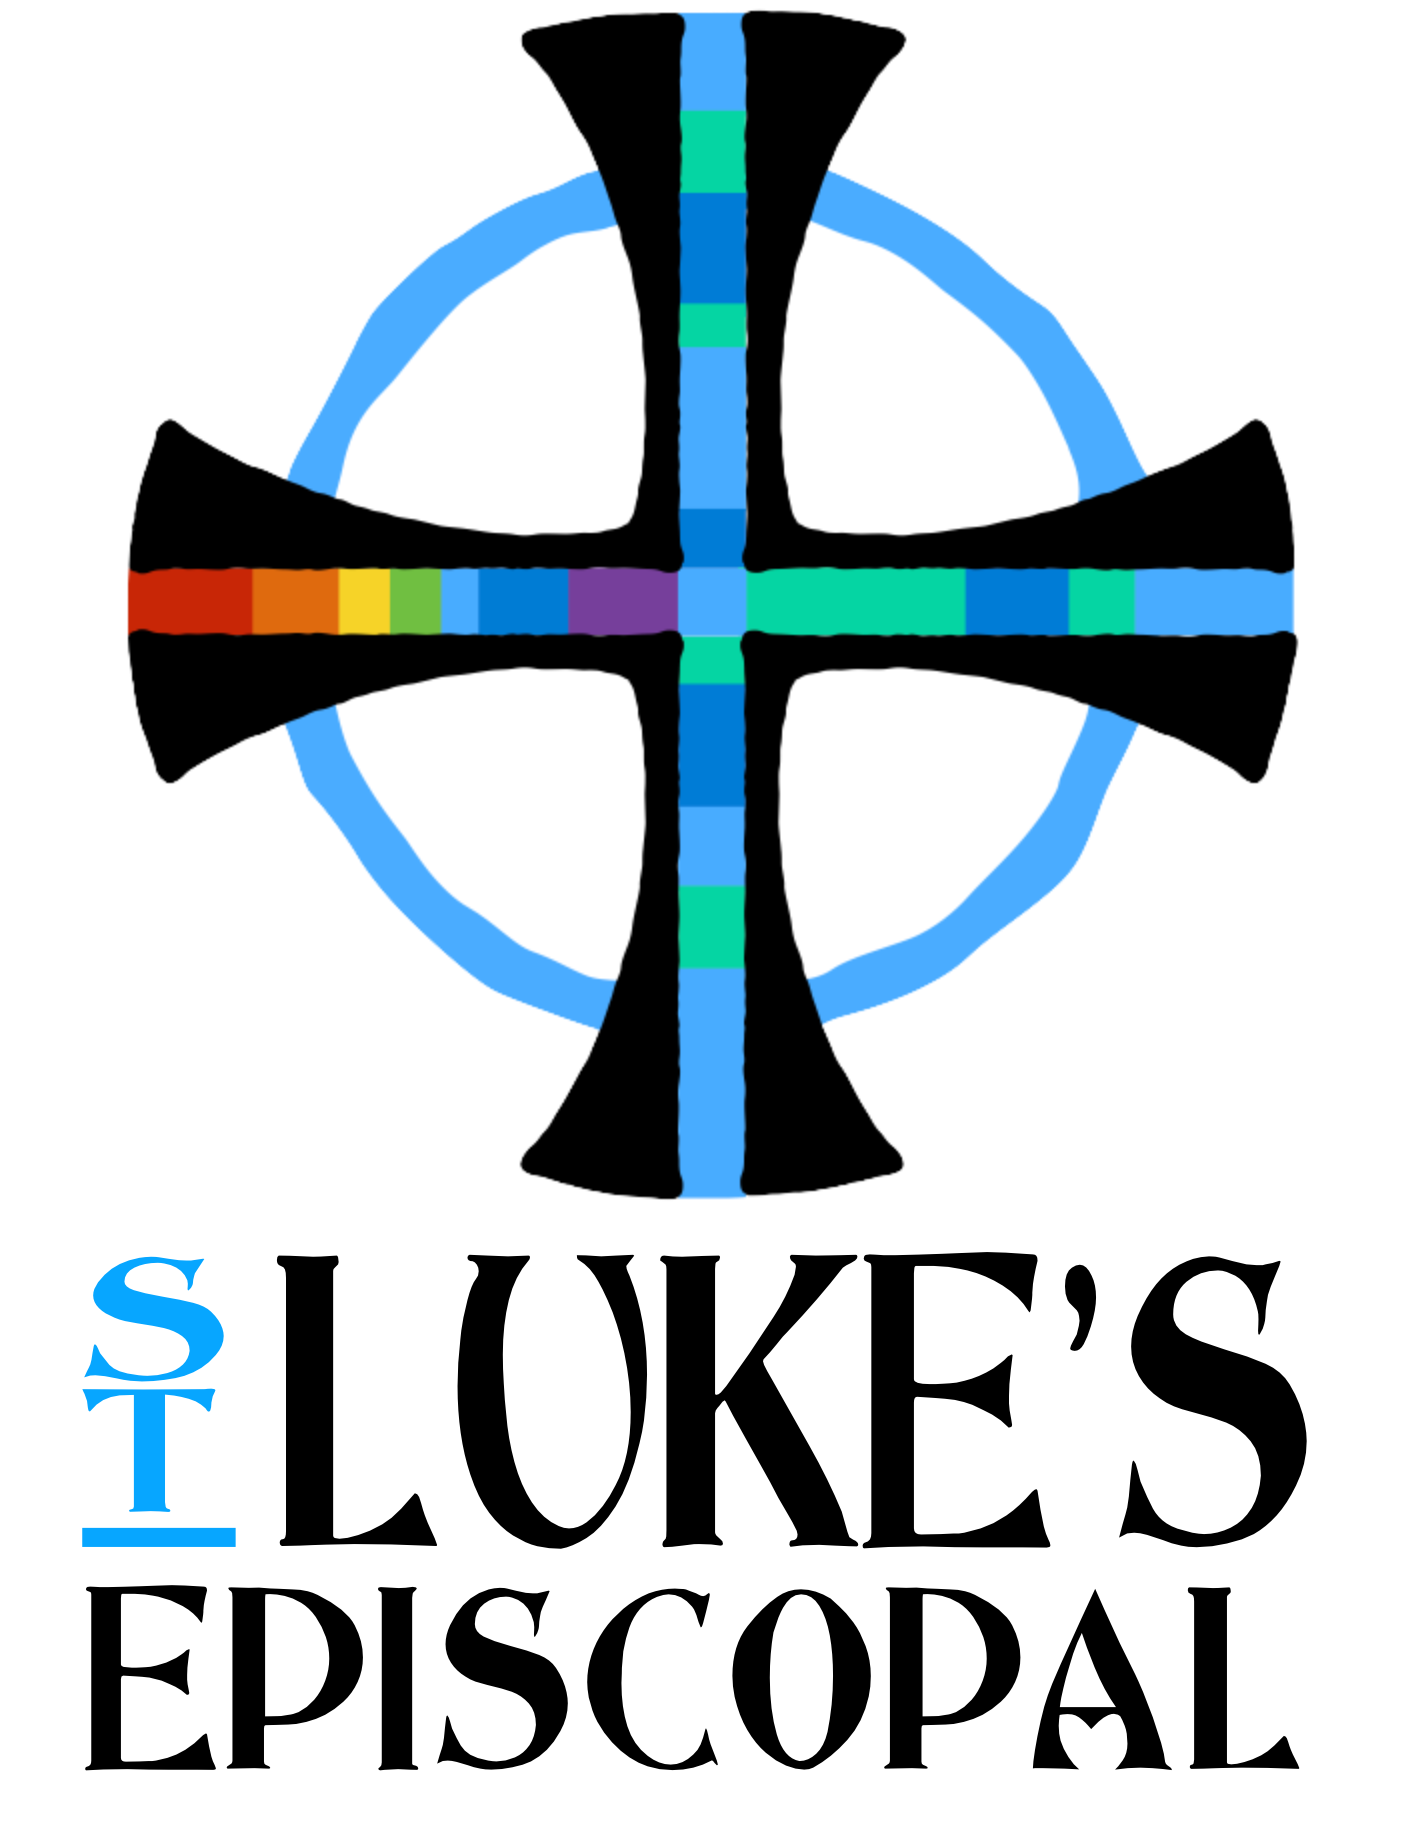 st-luke's-episcopal-cross-logo